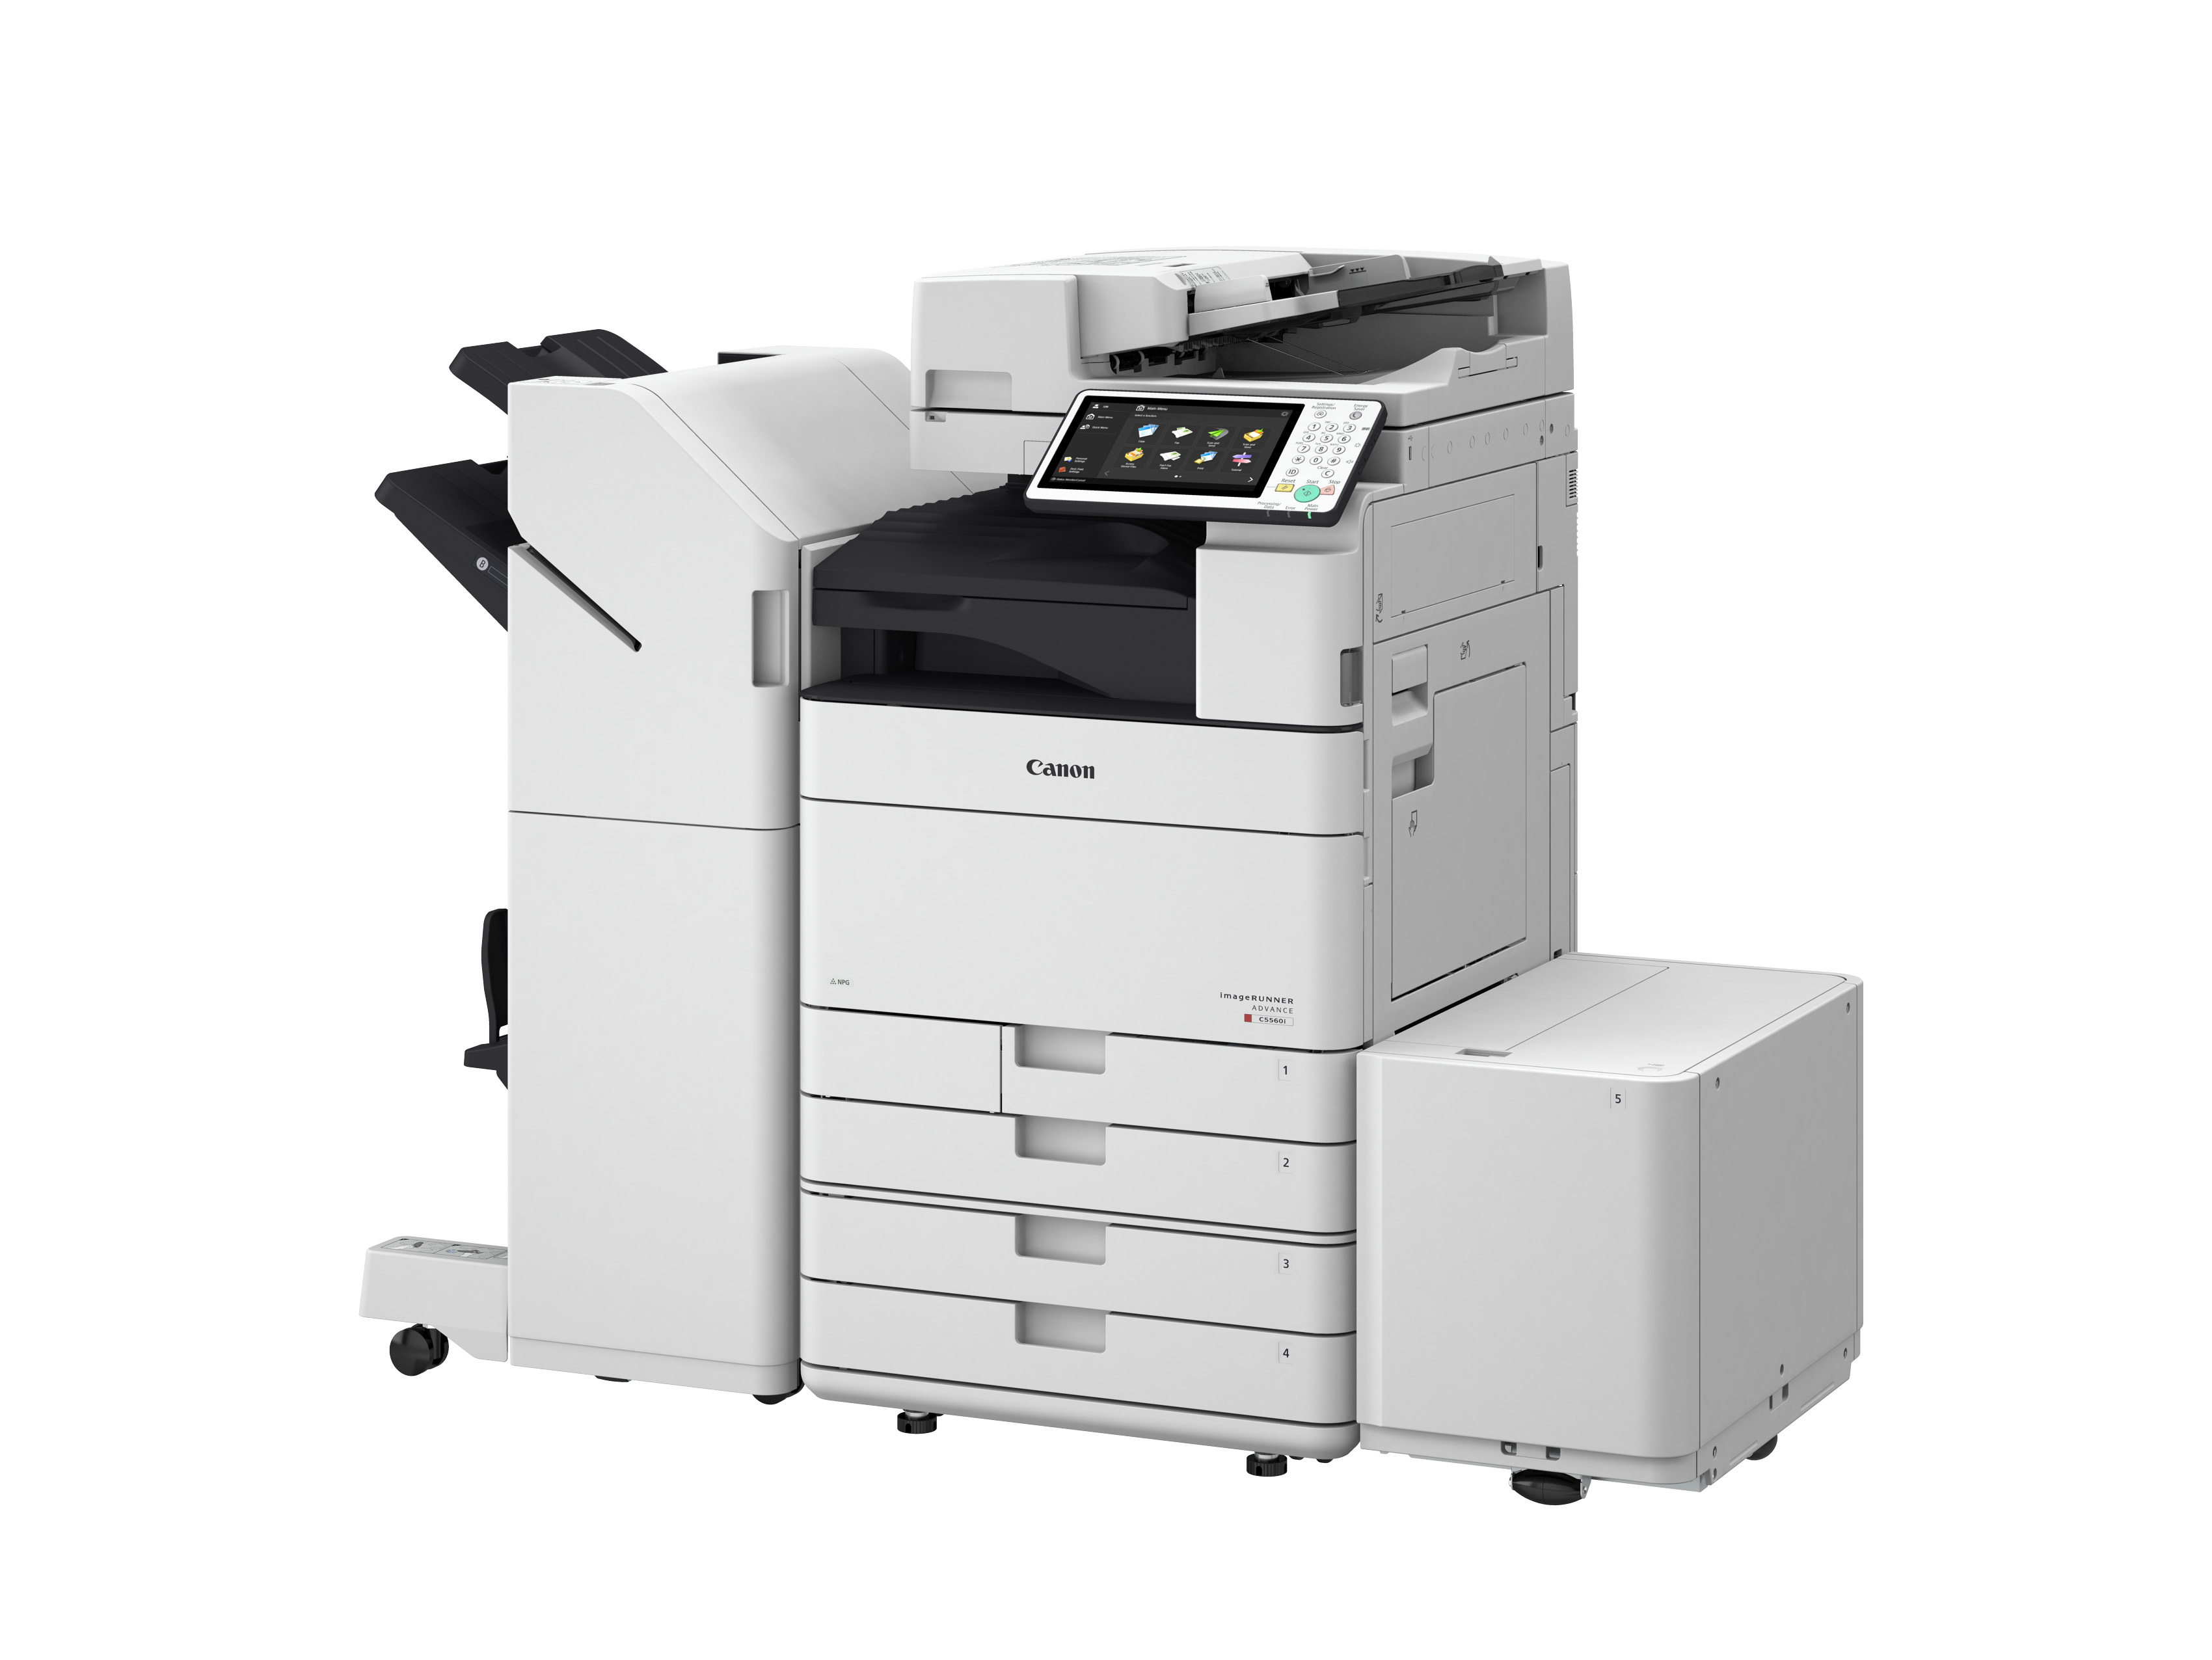 imageRUNNER ADVANCE C5500i